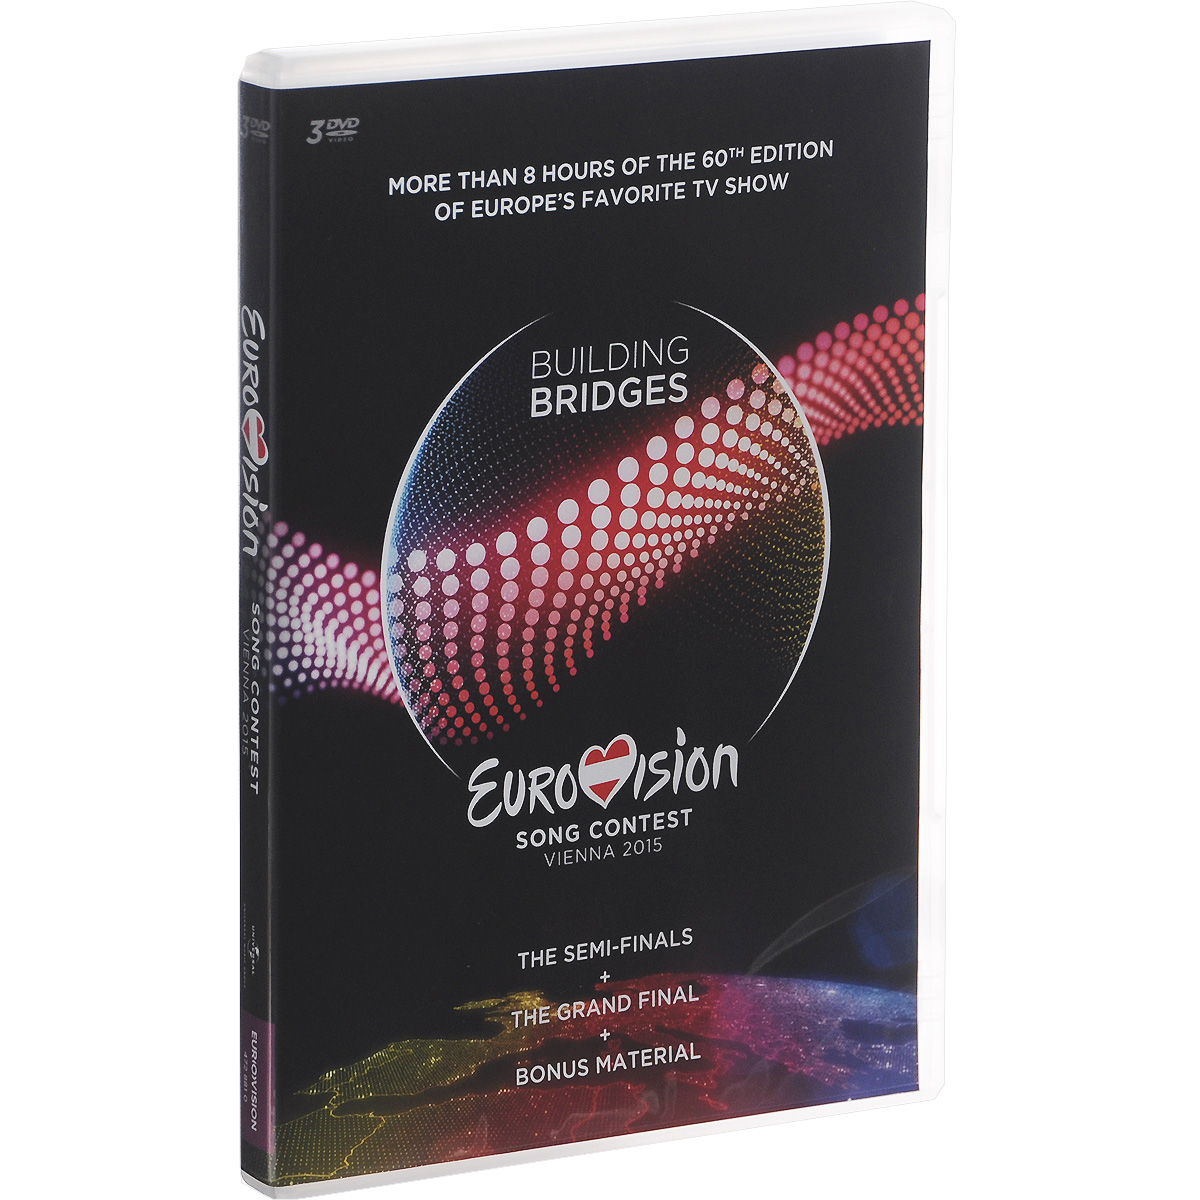 Eurovision: Song Contest Vienna 2015 (3 DVD)